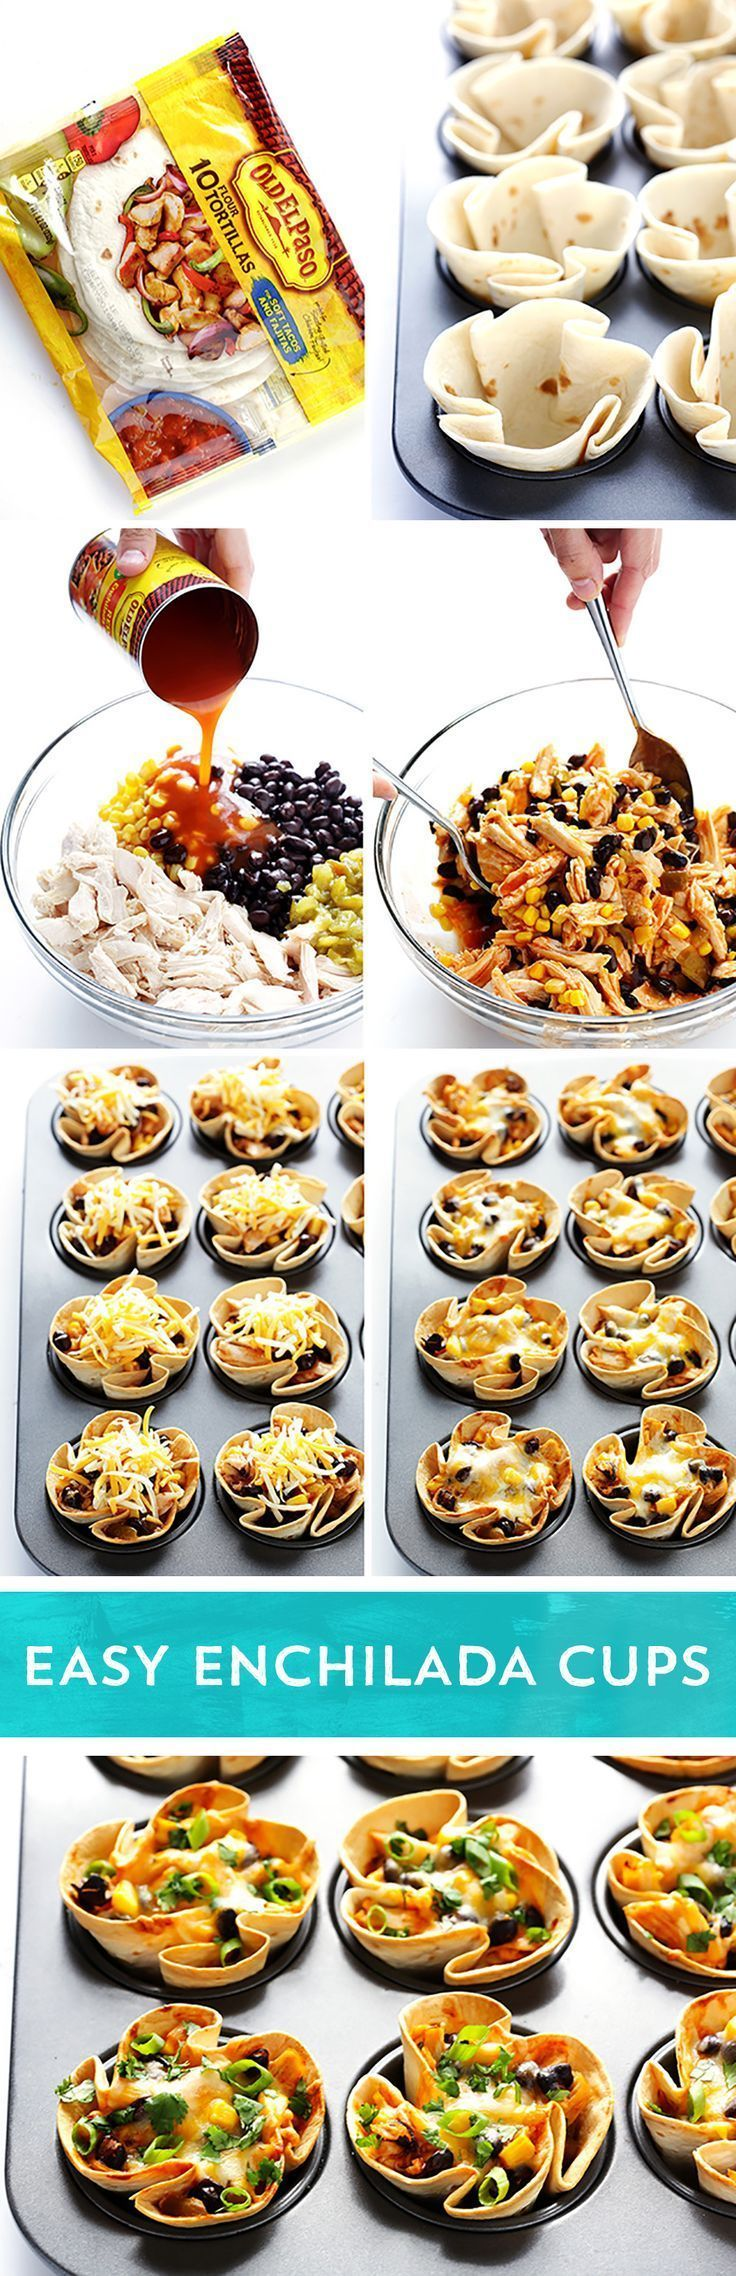 Try something new for taco night! These Easy Enchilada Cups from /gimmesomeoven/ are the perfect twist on traditional tacos! They're ready to eat in just 30 minutes - and they're the perfect party appetizer or dinner idea!